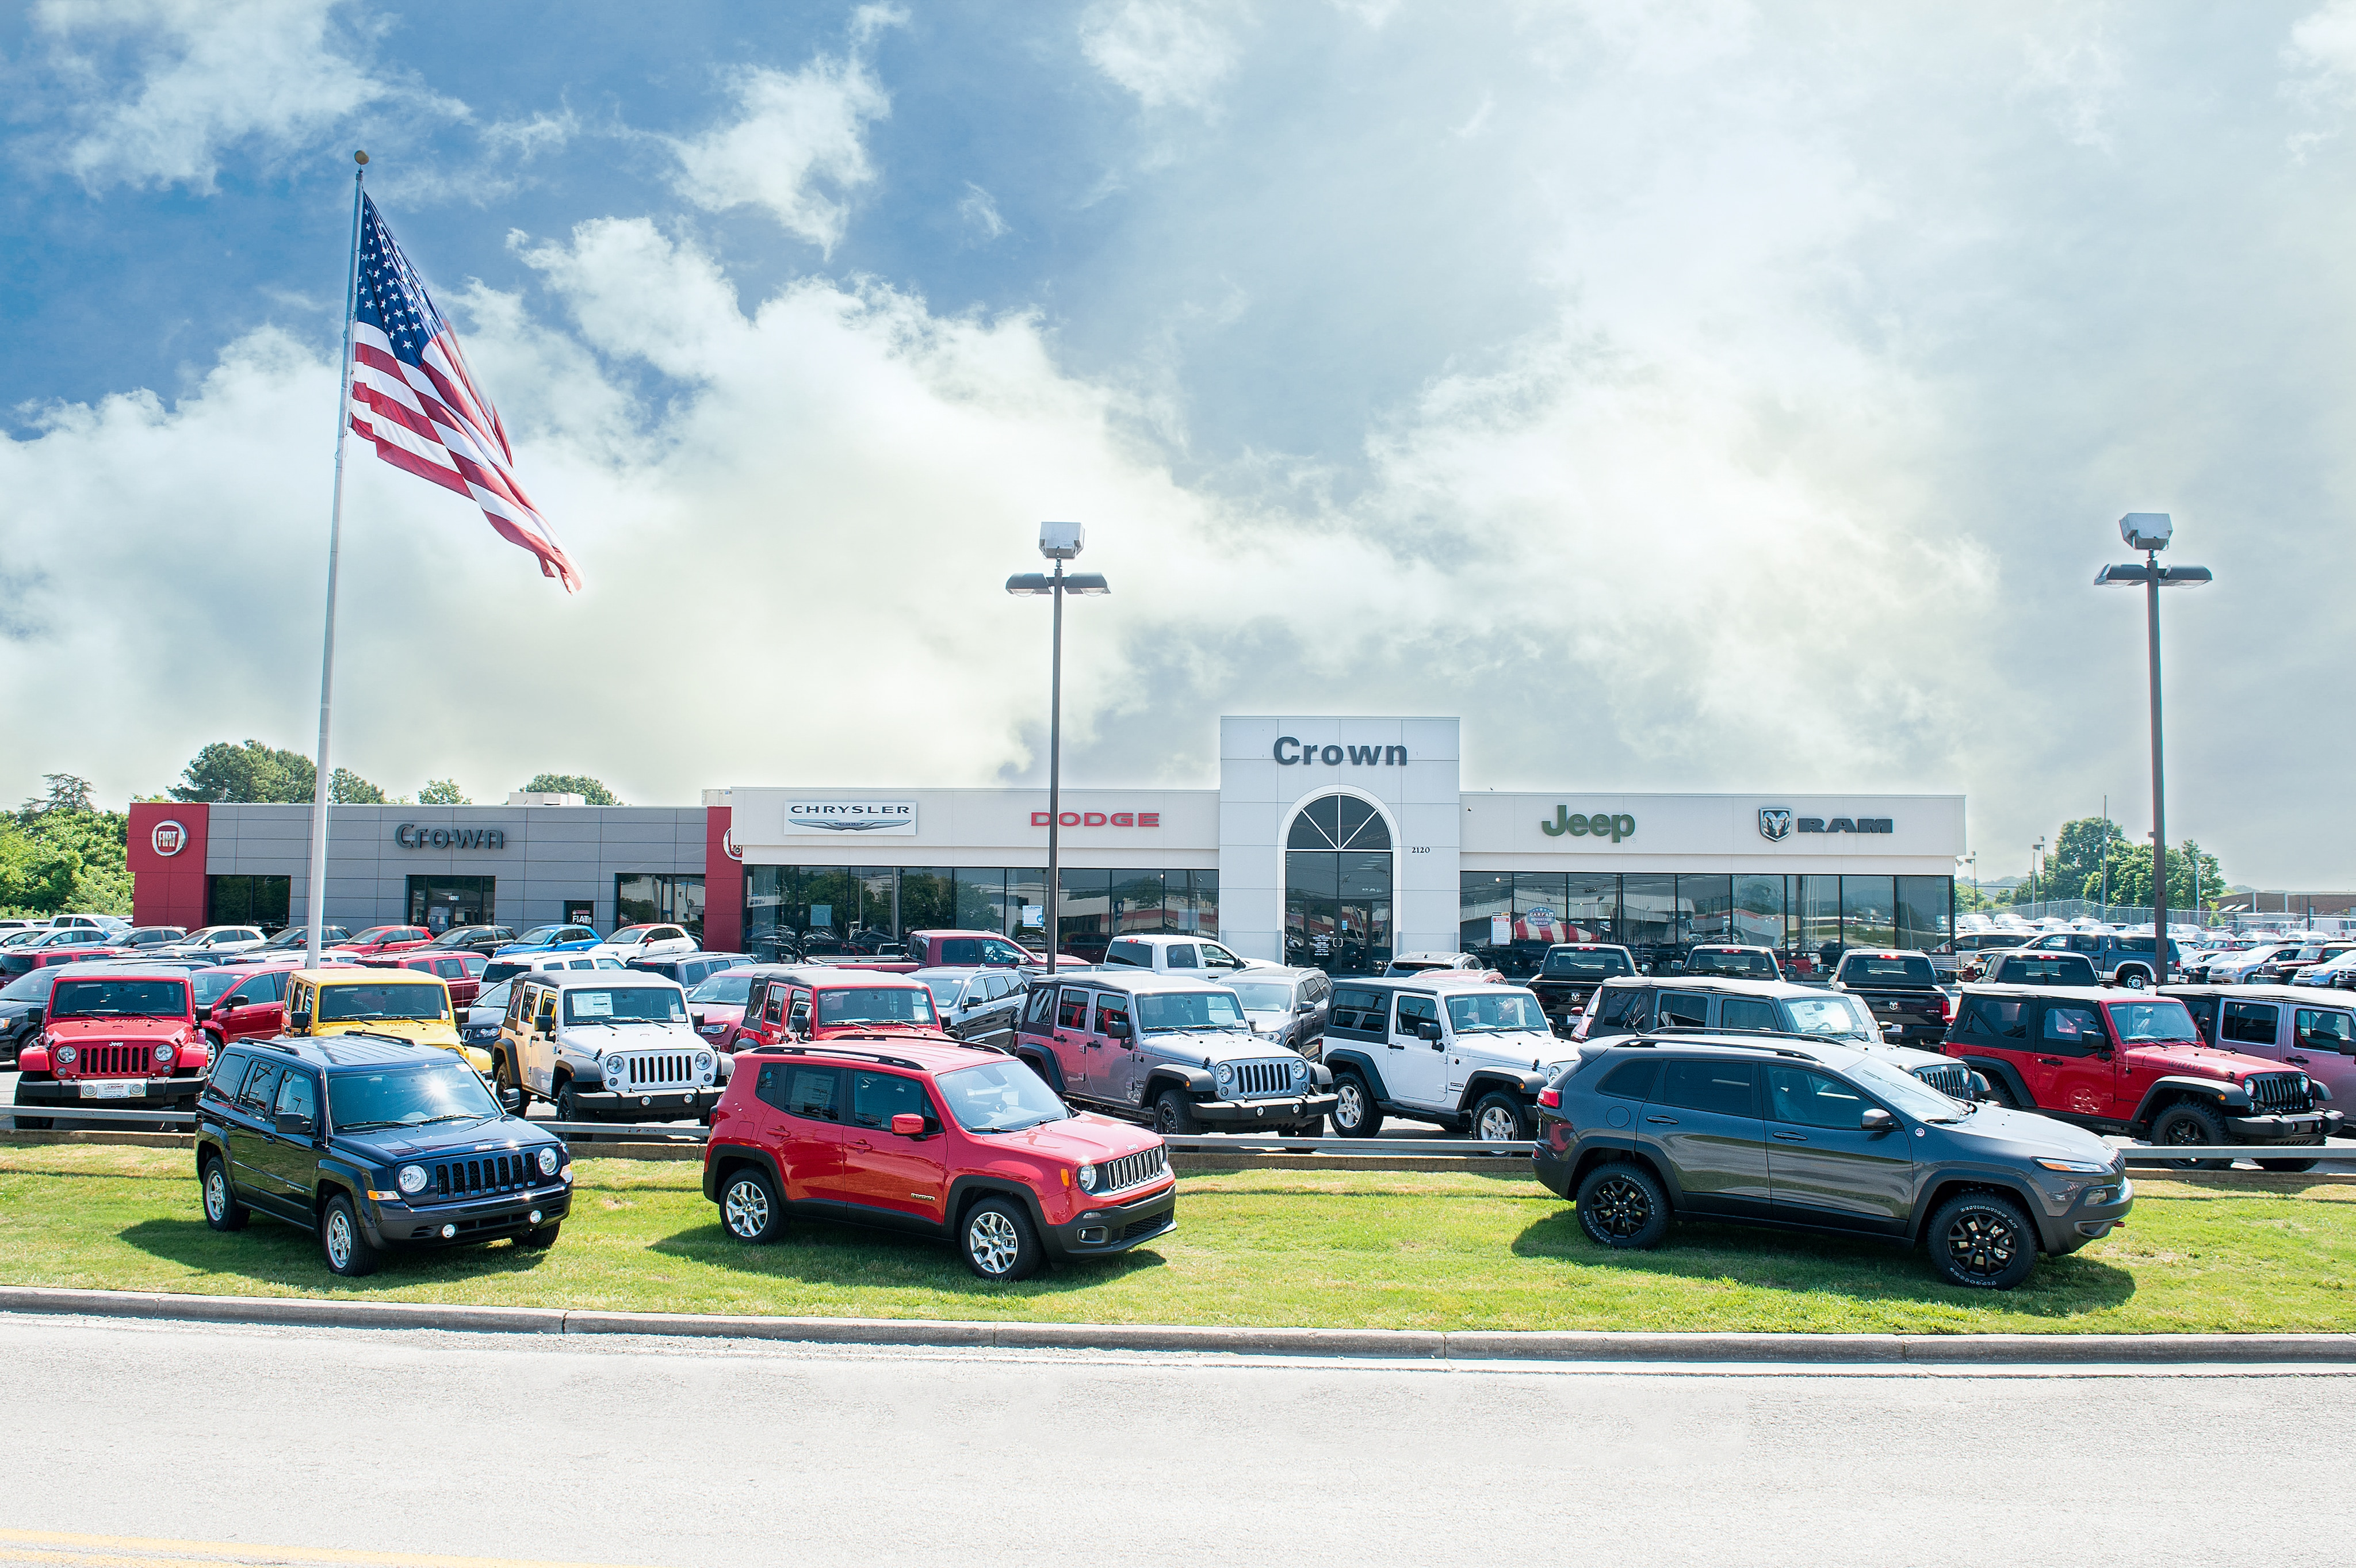 Crown Car Dealership Chattanooga